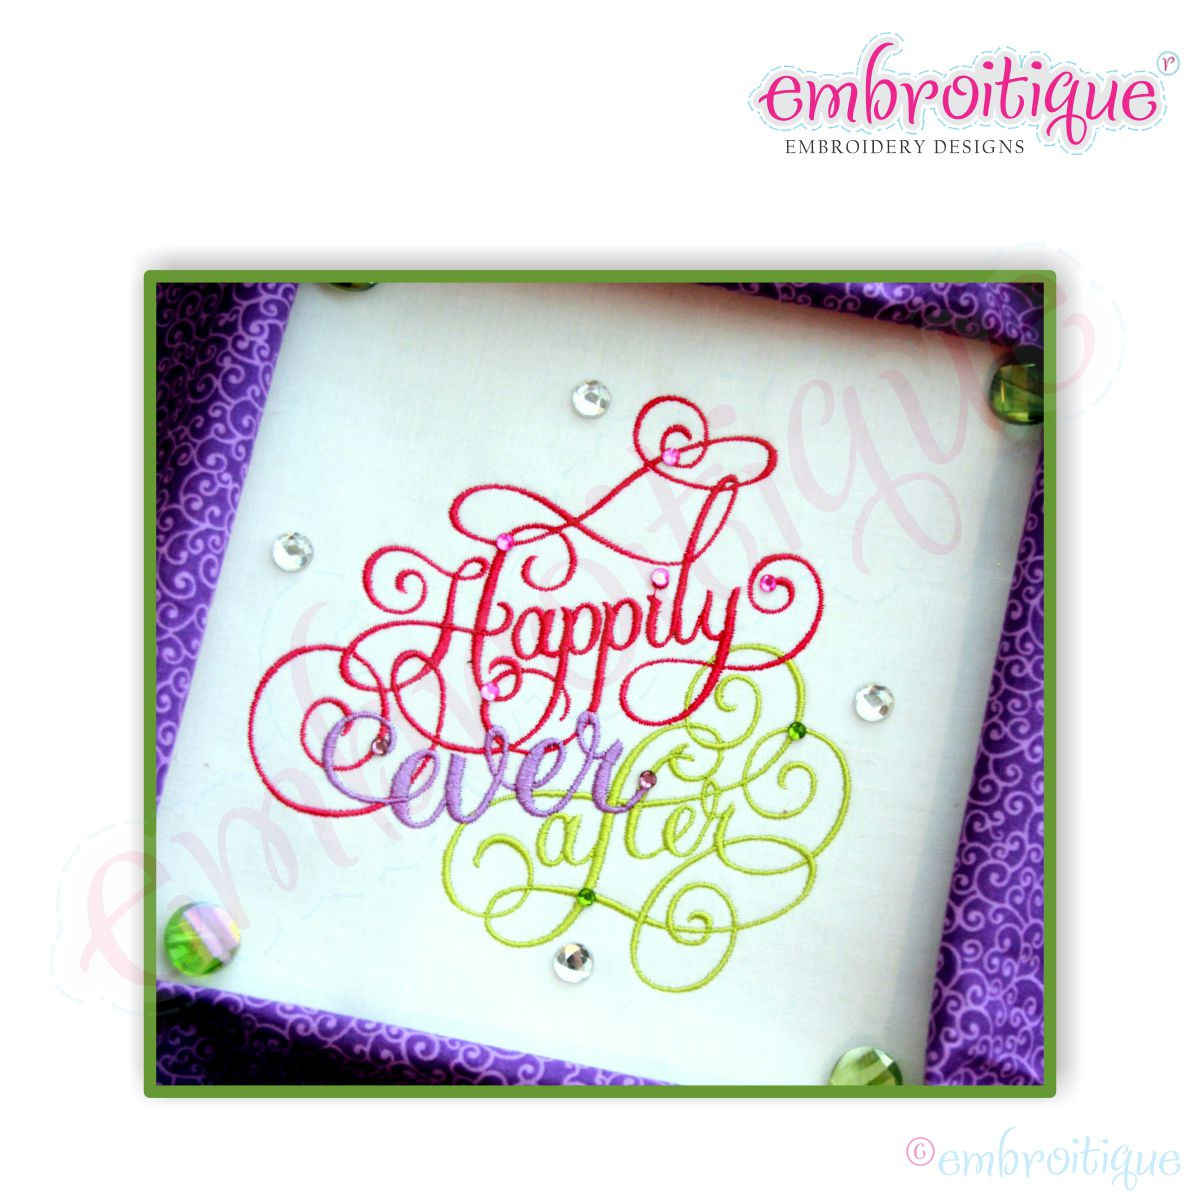 Inspirational Embroitique Happily Ever after Wedding Embroidery Design Wedding Embroidery Designs Of Wonderful 48 Photos Wedding Embroidery Designs